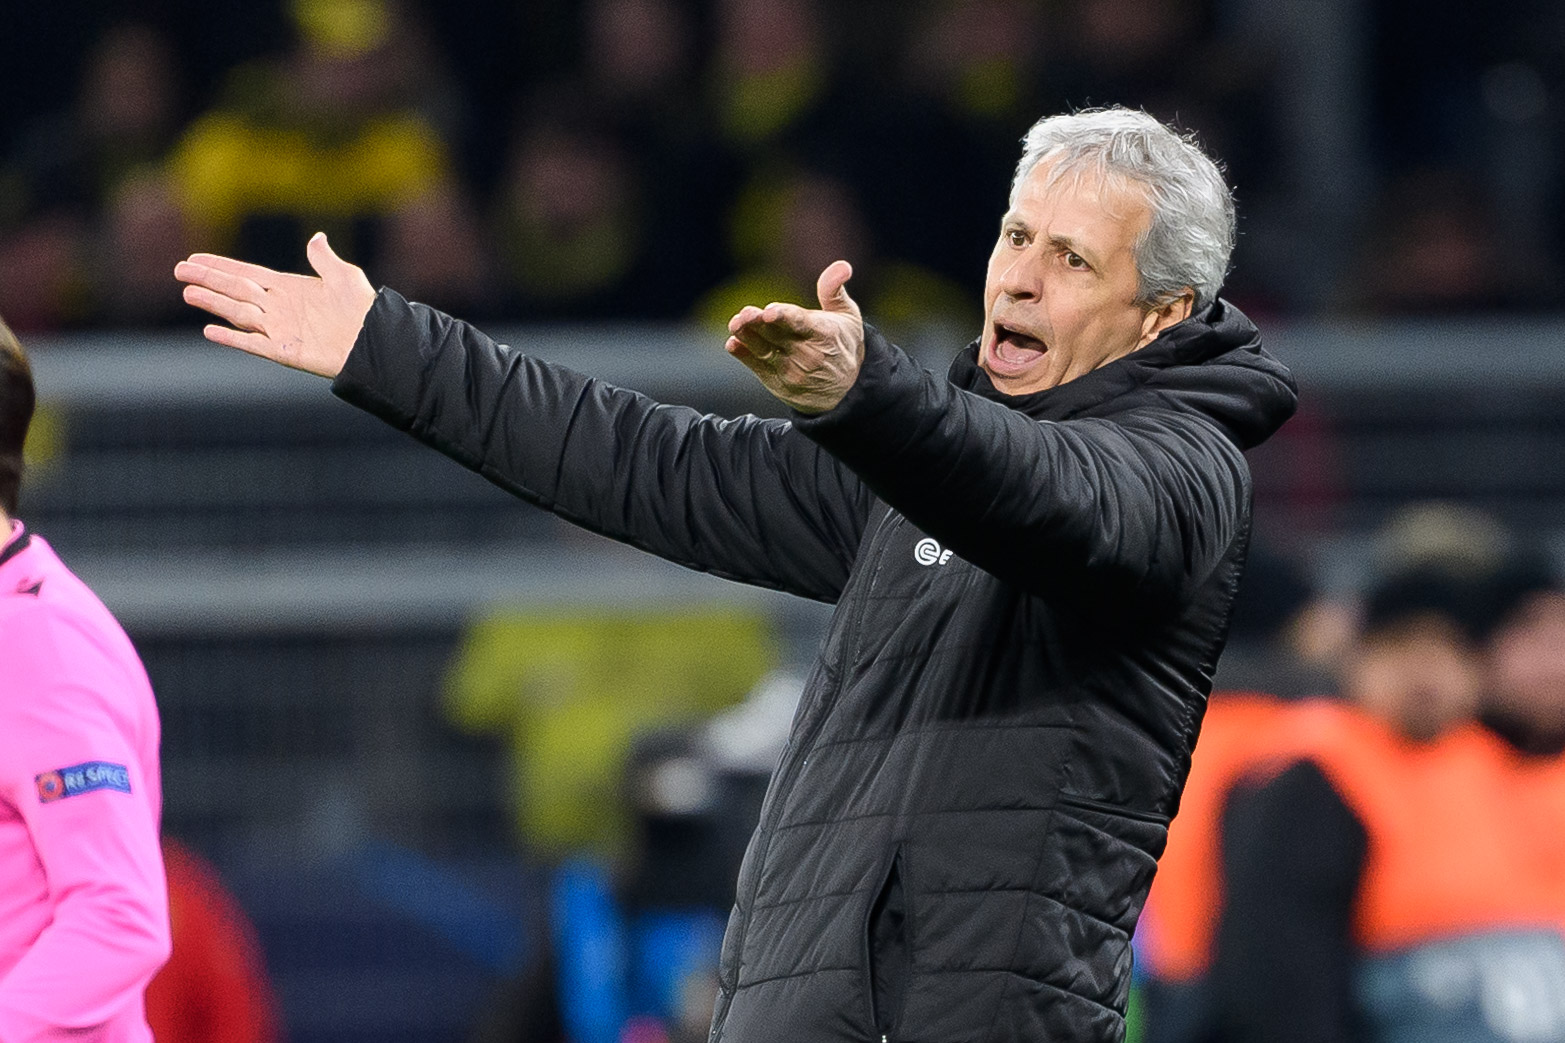 Borussia Dortmund: Lucien Favre could be sacked if he fails to win the Bundesliga title